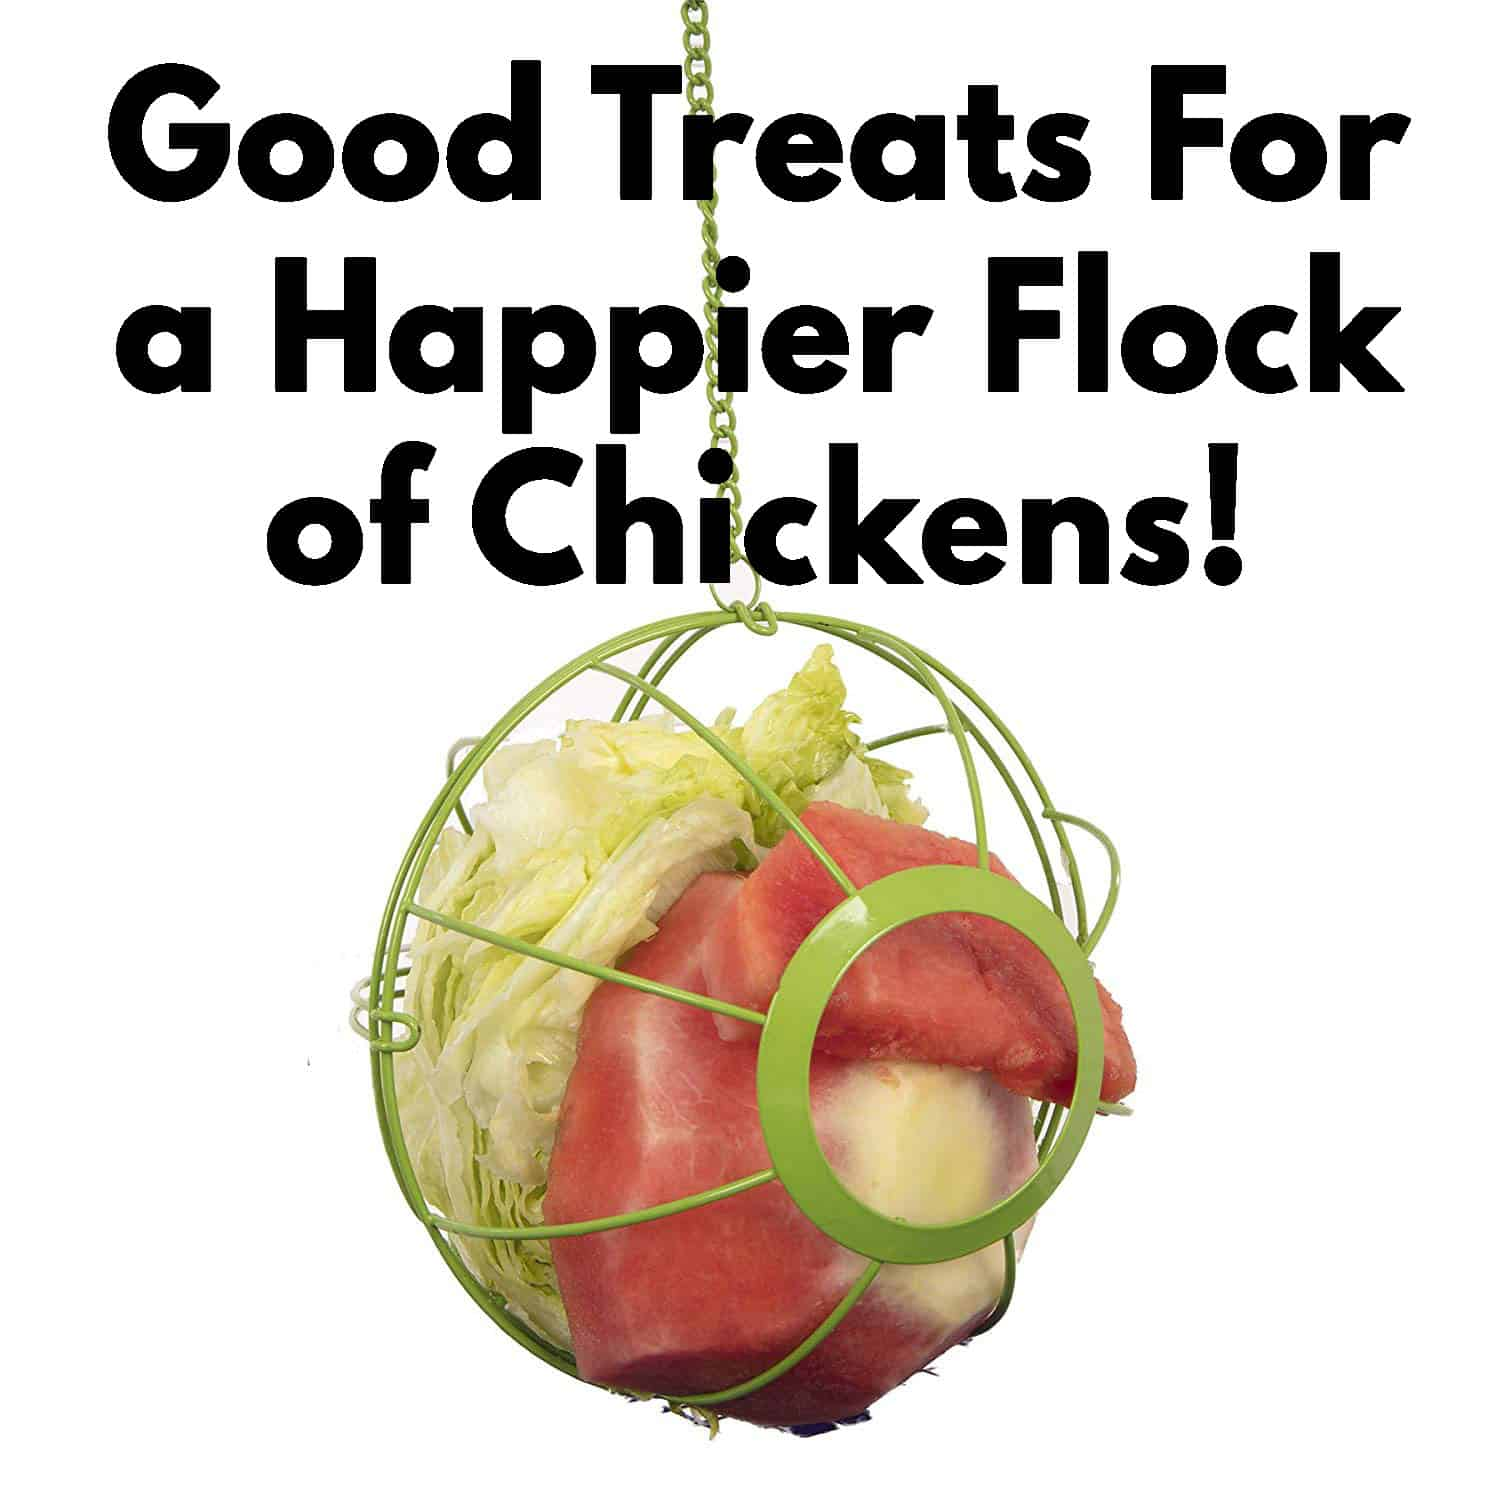 Good Treats For a Happier Flock of Chickens!